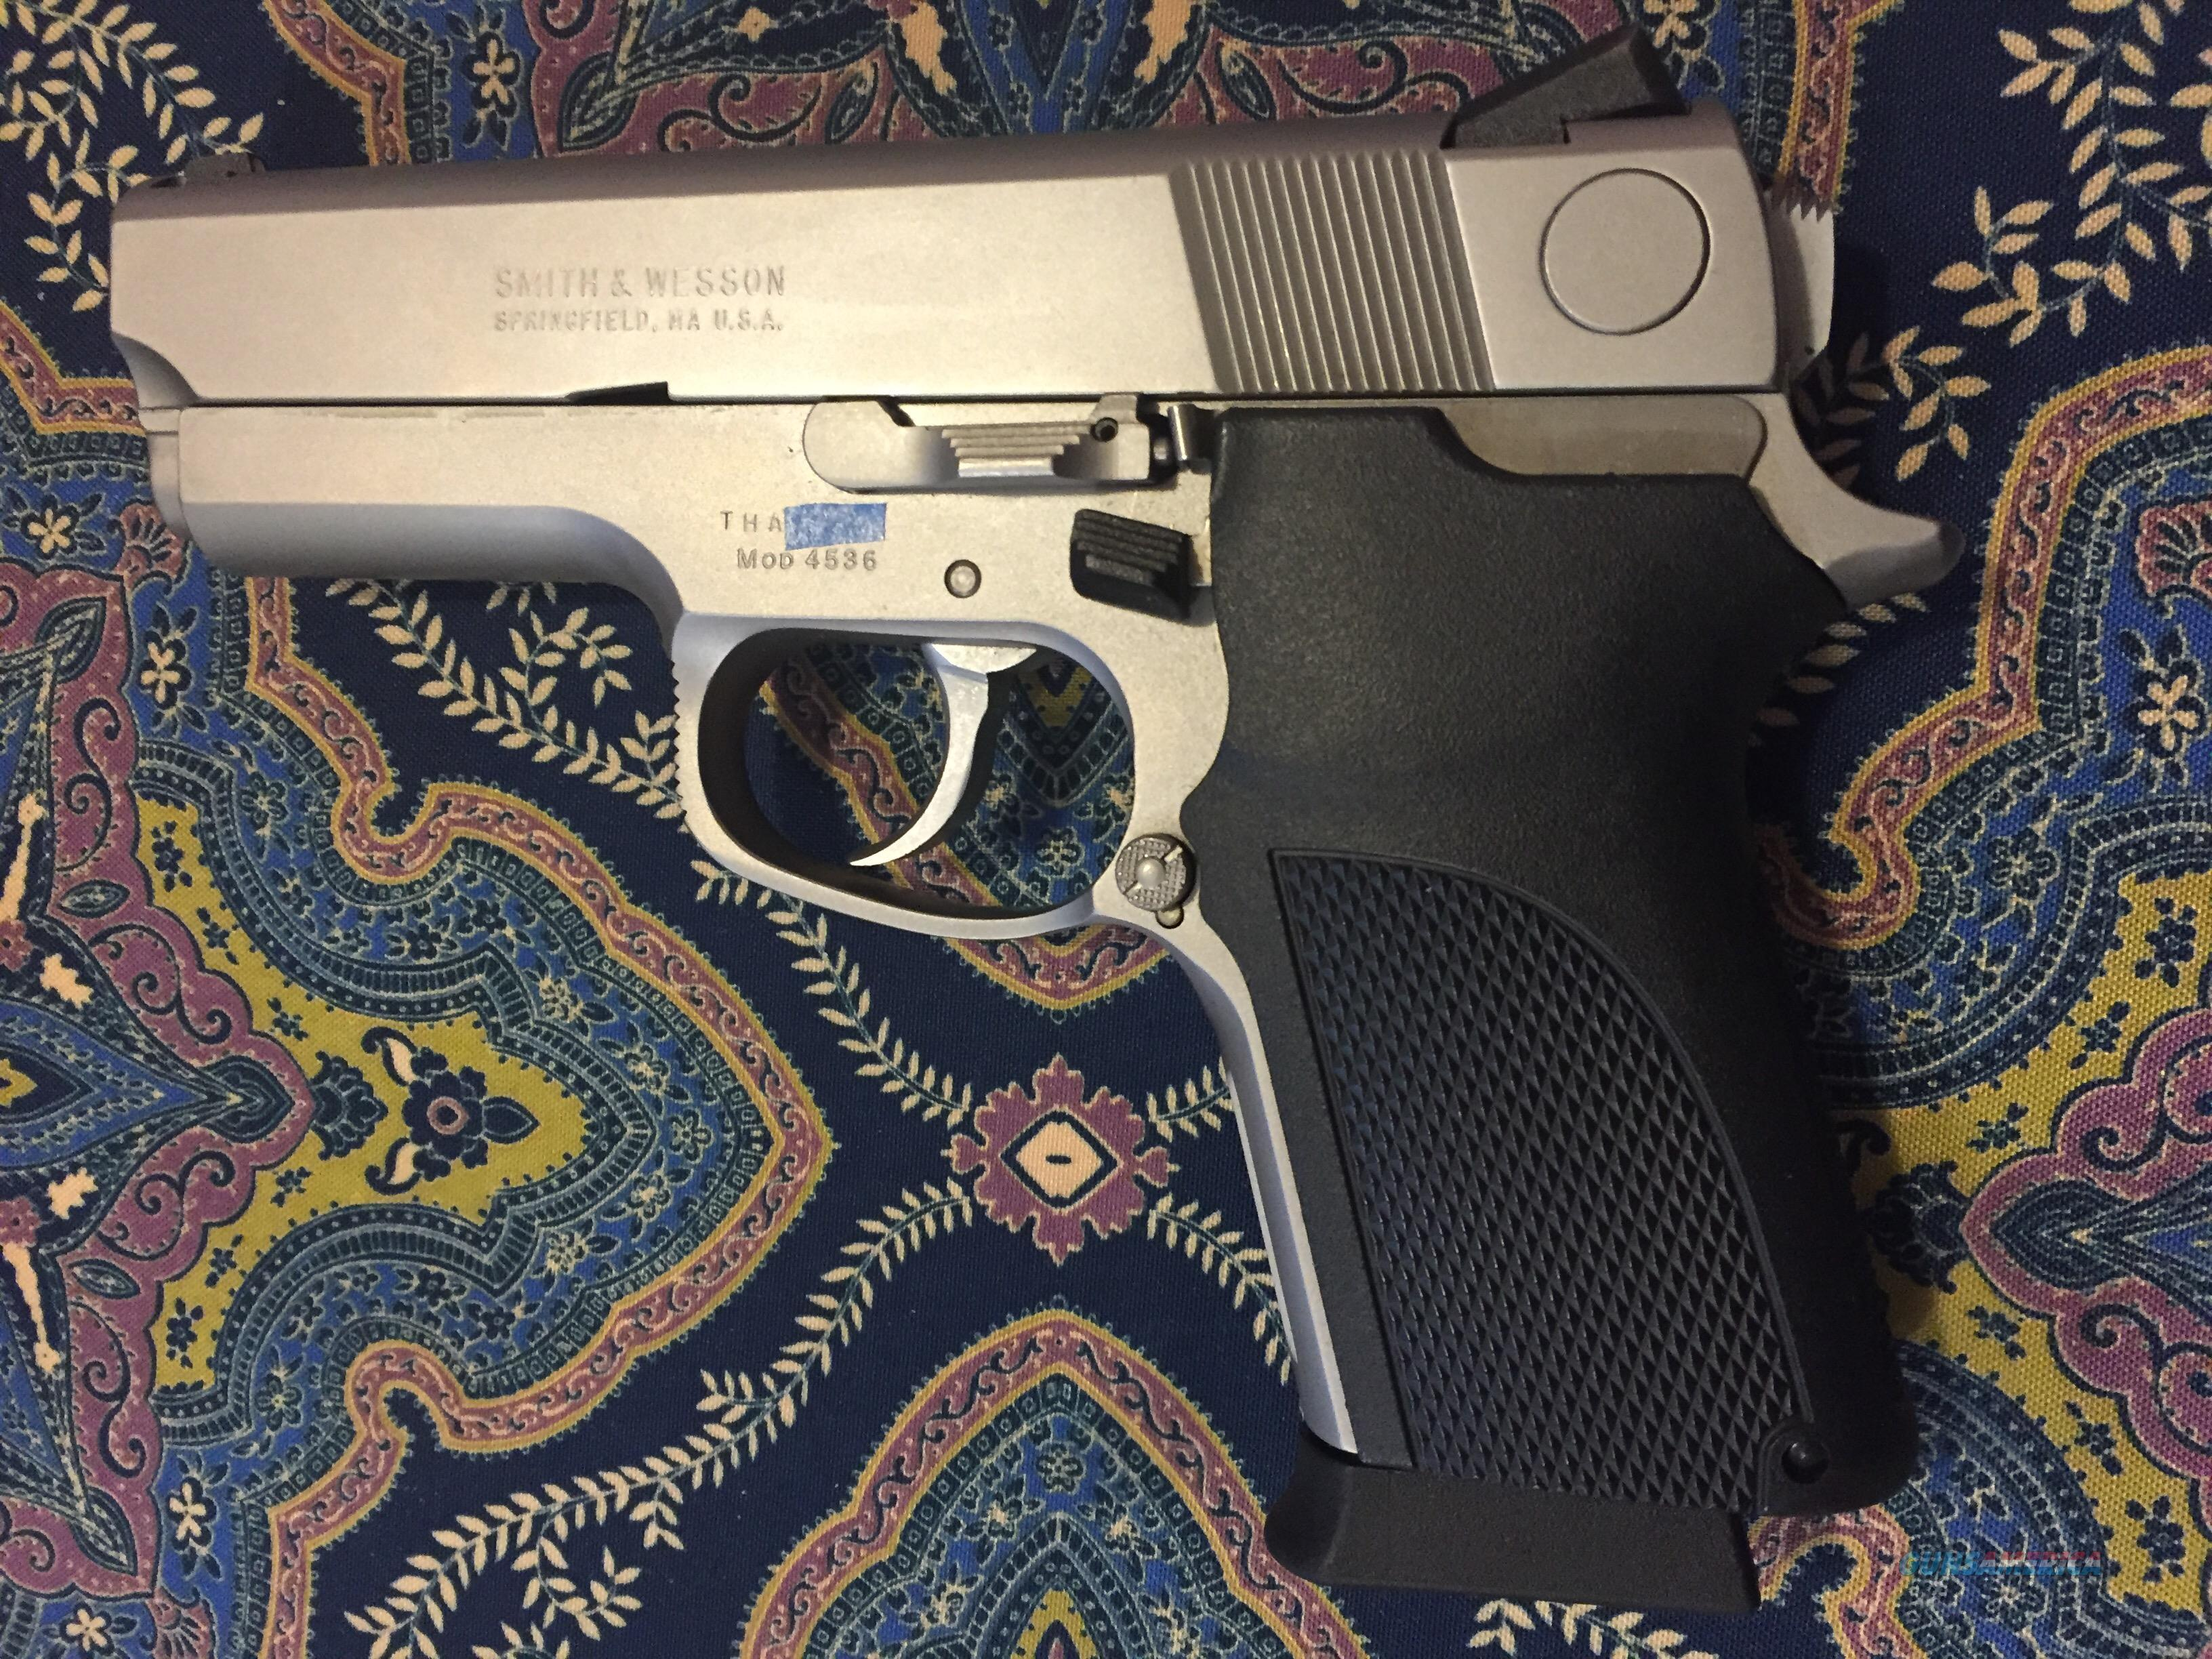 Smith and Wesson 4536, with original box and papers  Guns > Pistols > Smith & Wesson Pistols - Autos > Steel Frame